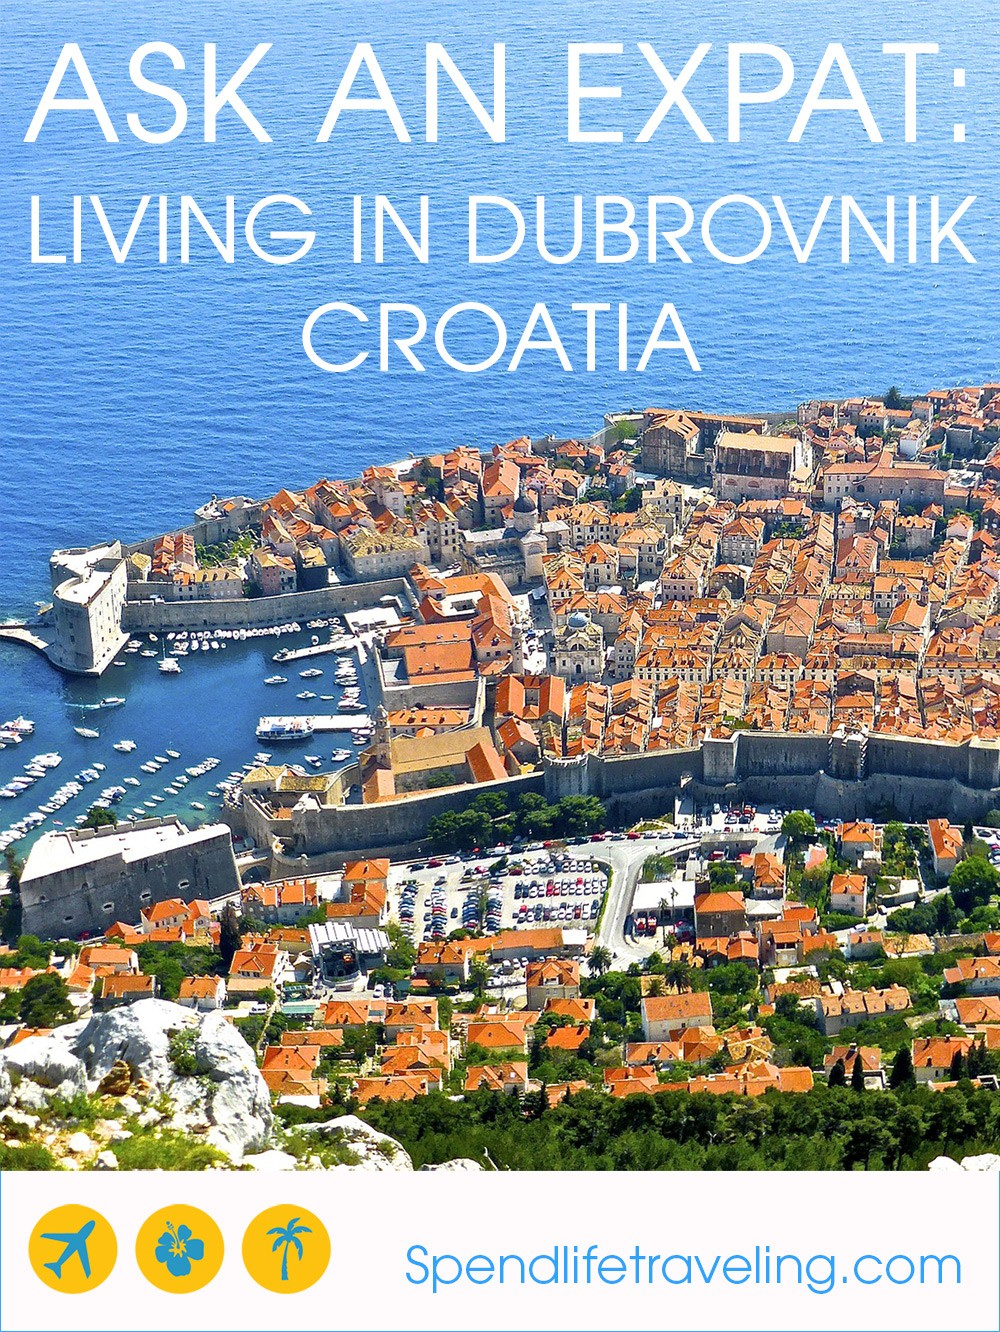 Living in Dubrovnik, Croatia. An inspiring interview with an expat about moving to and living in #Dubrovnik. #expat #moveabroad #lifeabroad